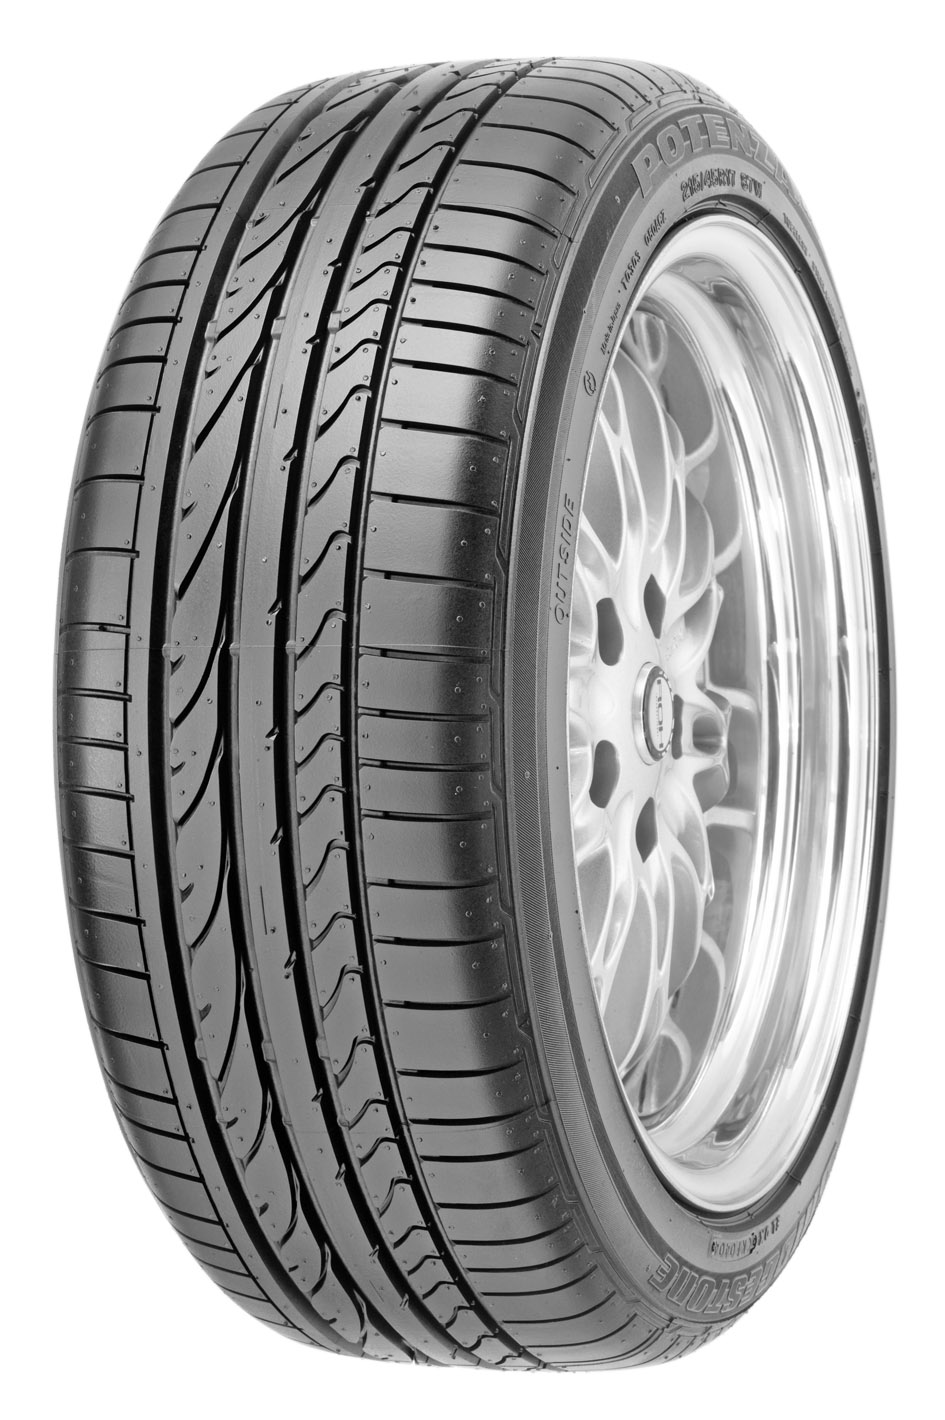 Anvelopa Vara Bridgestone Re050a 225/50 R17 94w